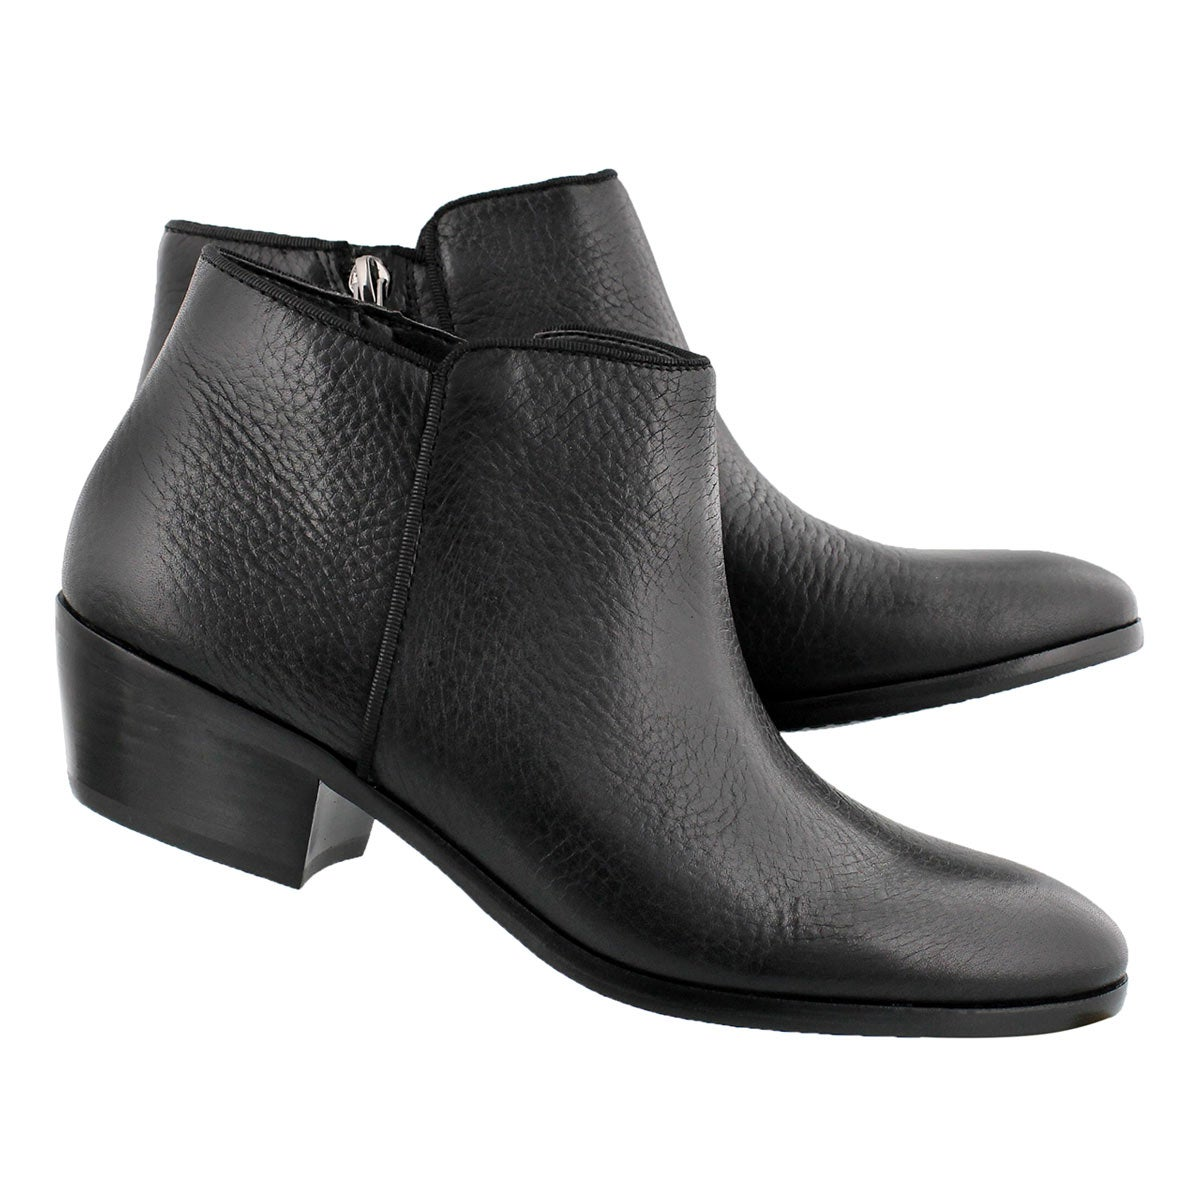 Lds Petty black leather casual bootie